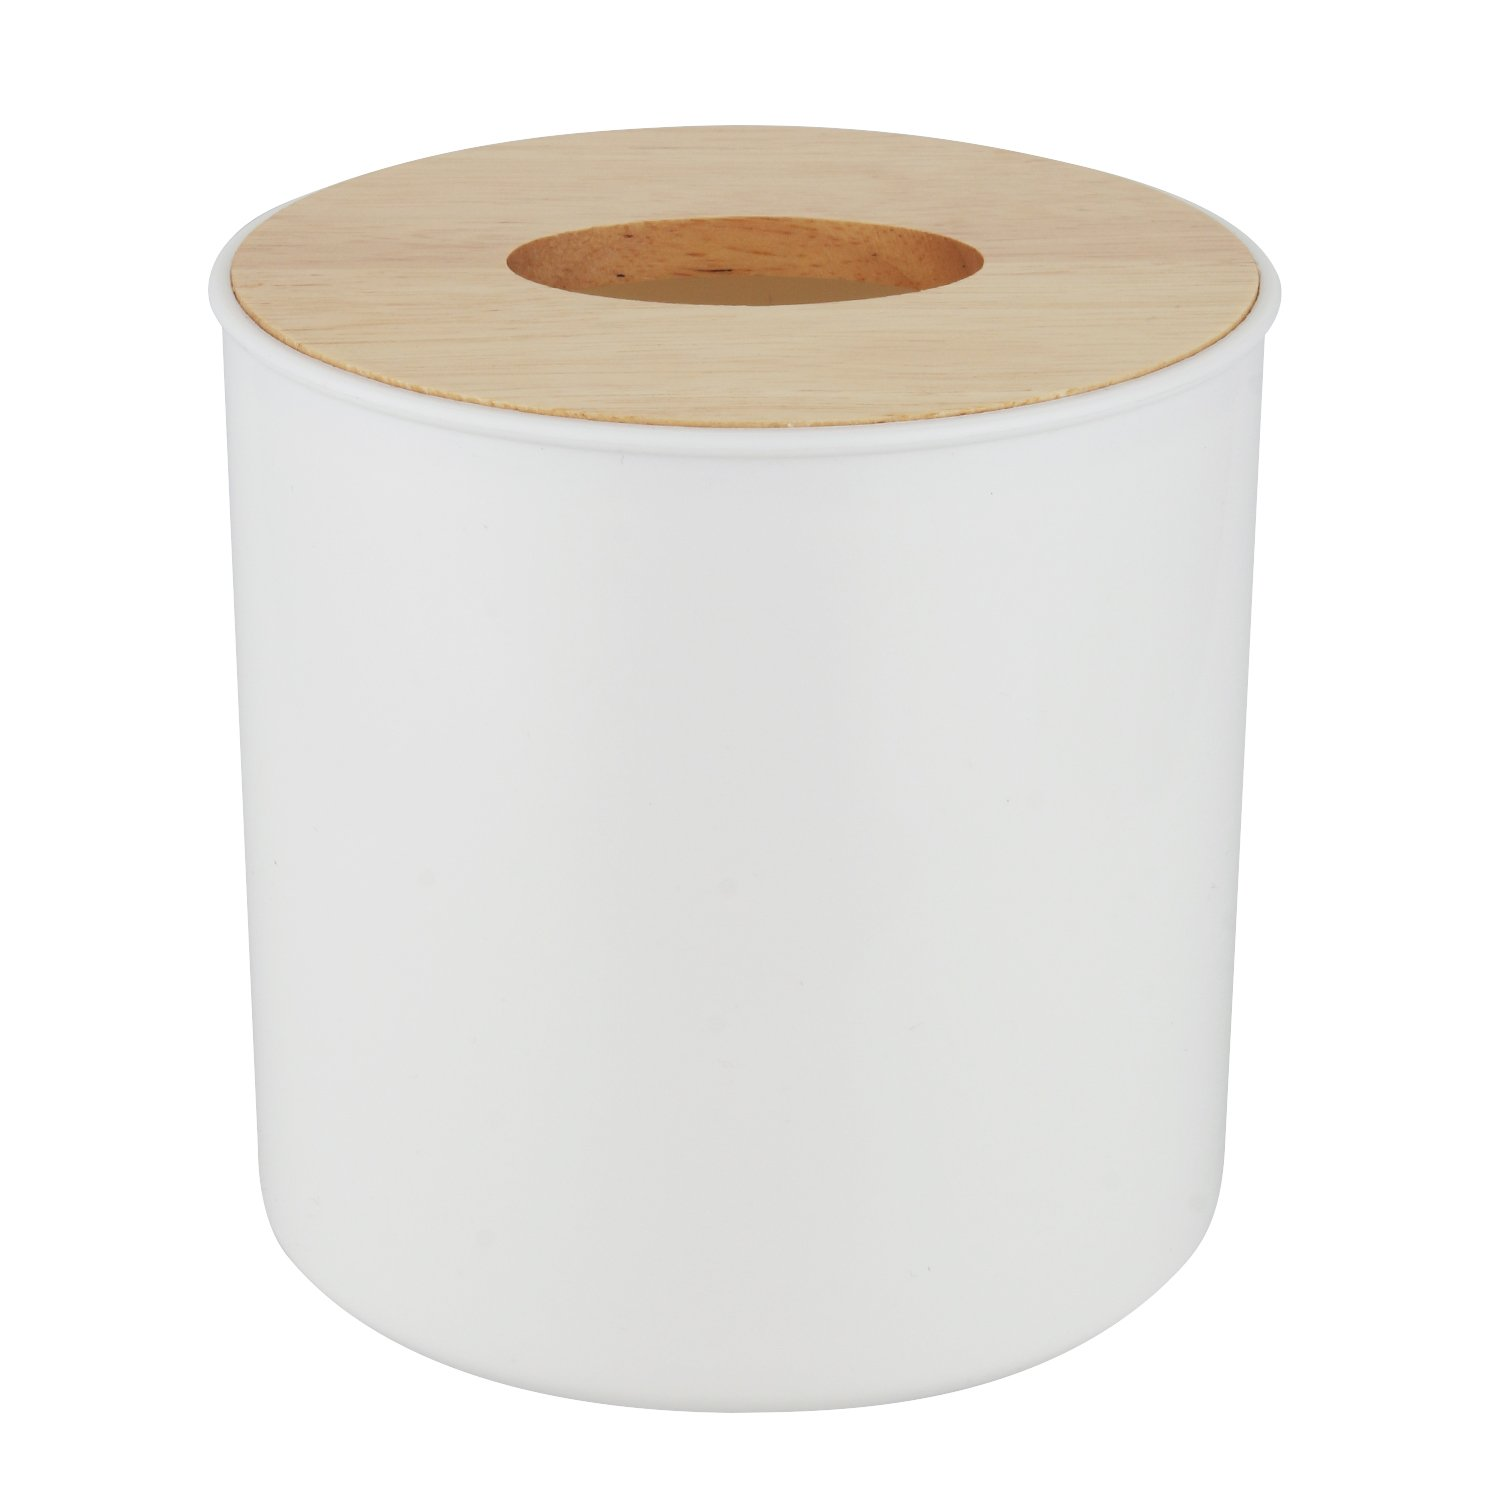 office paper holders. Merssavo Vintage Roll Toilet Paper Holder, Tissue Holders Storage Box Home Office Dispenser Container O